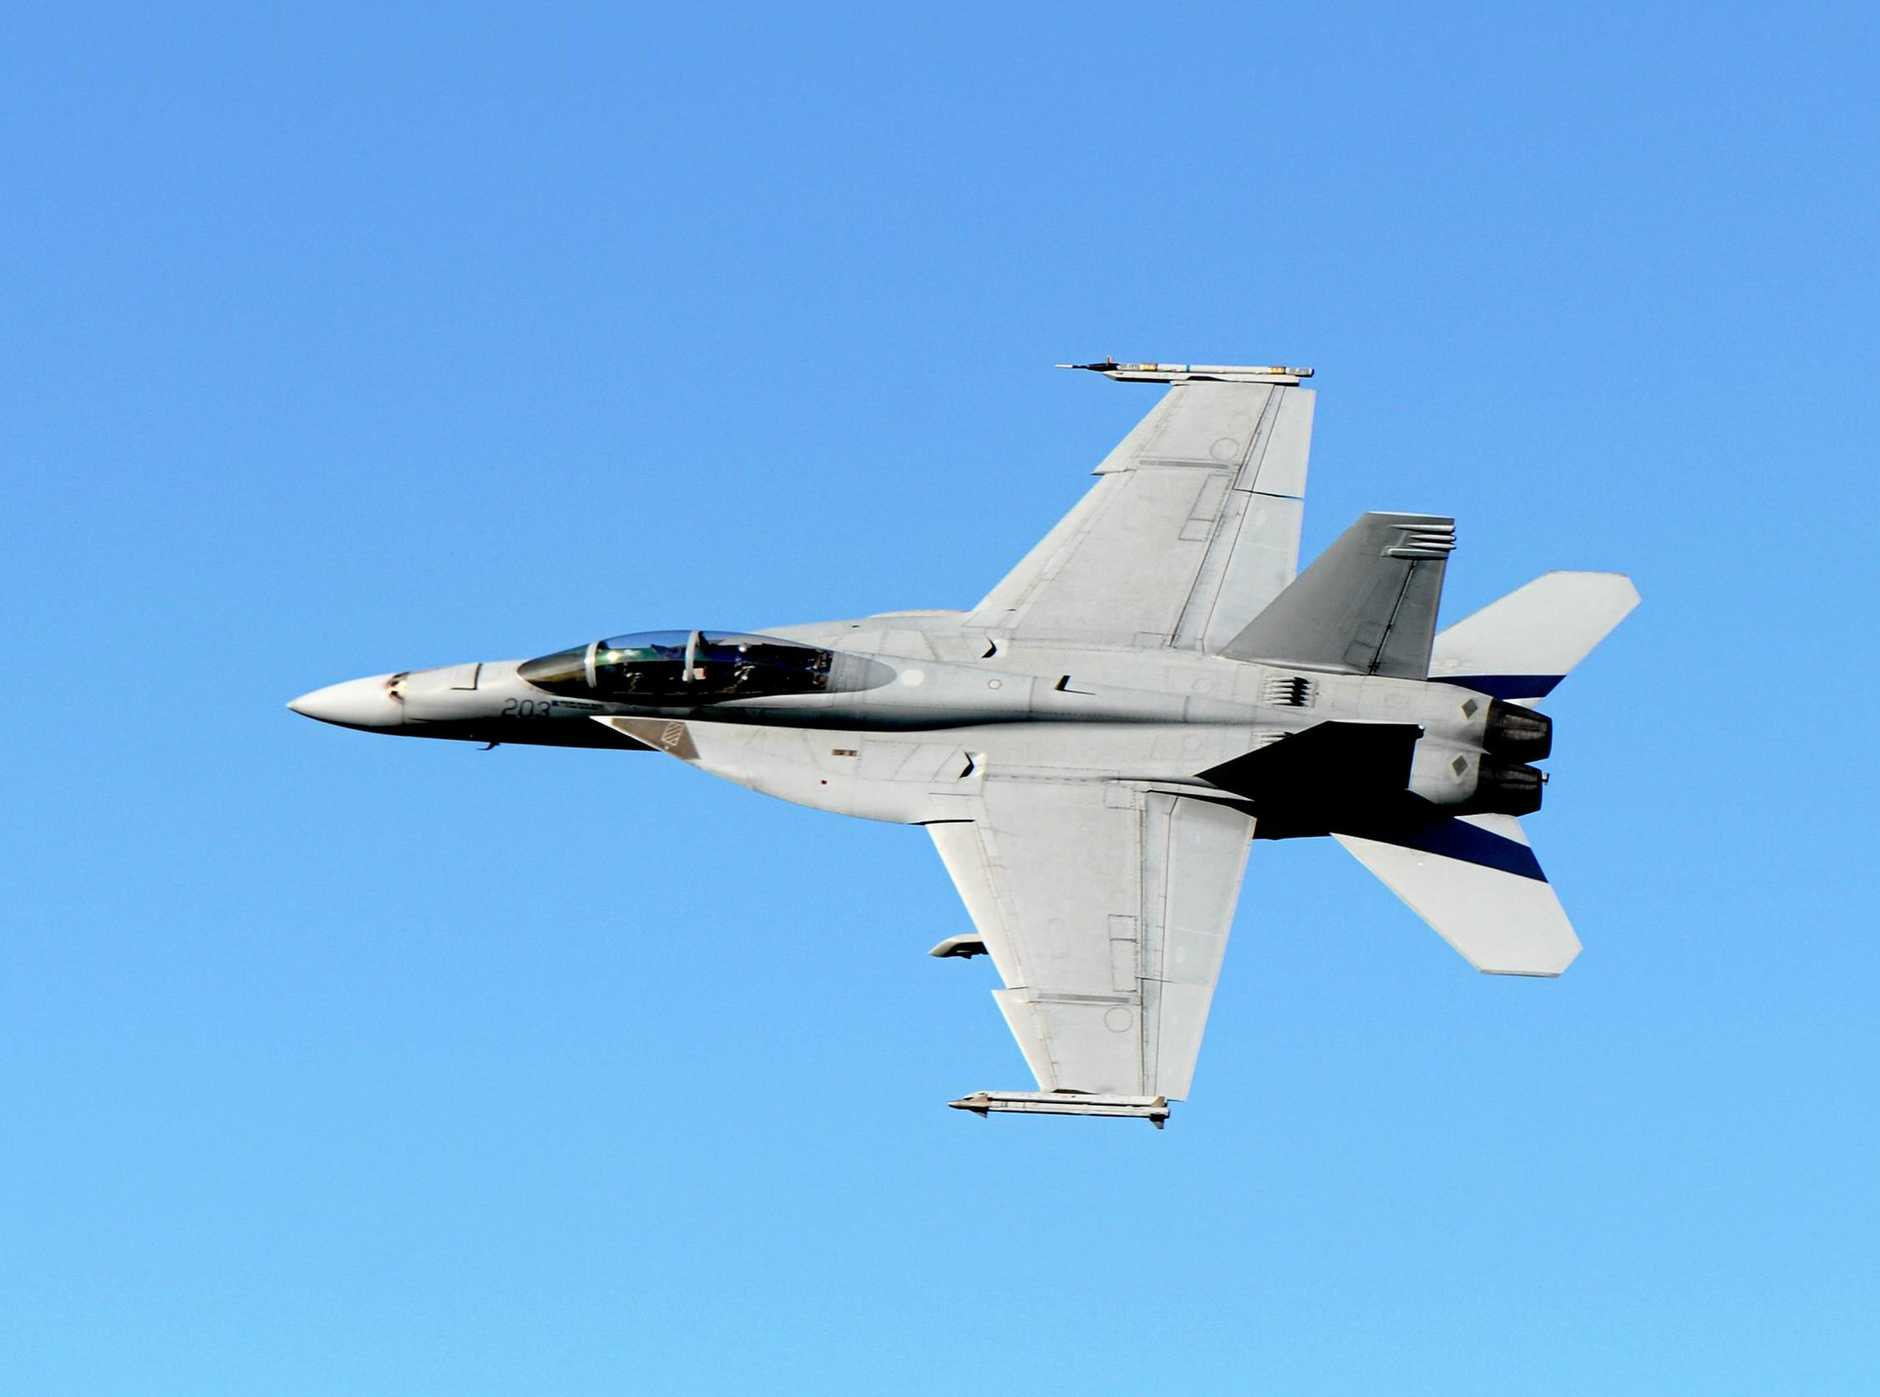 Pilots from 82 Wing based at Amberley RAAF Base fly Super Hornets from the south towards the Evans Head Air Weapons Range during a training exercise.